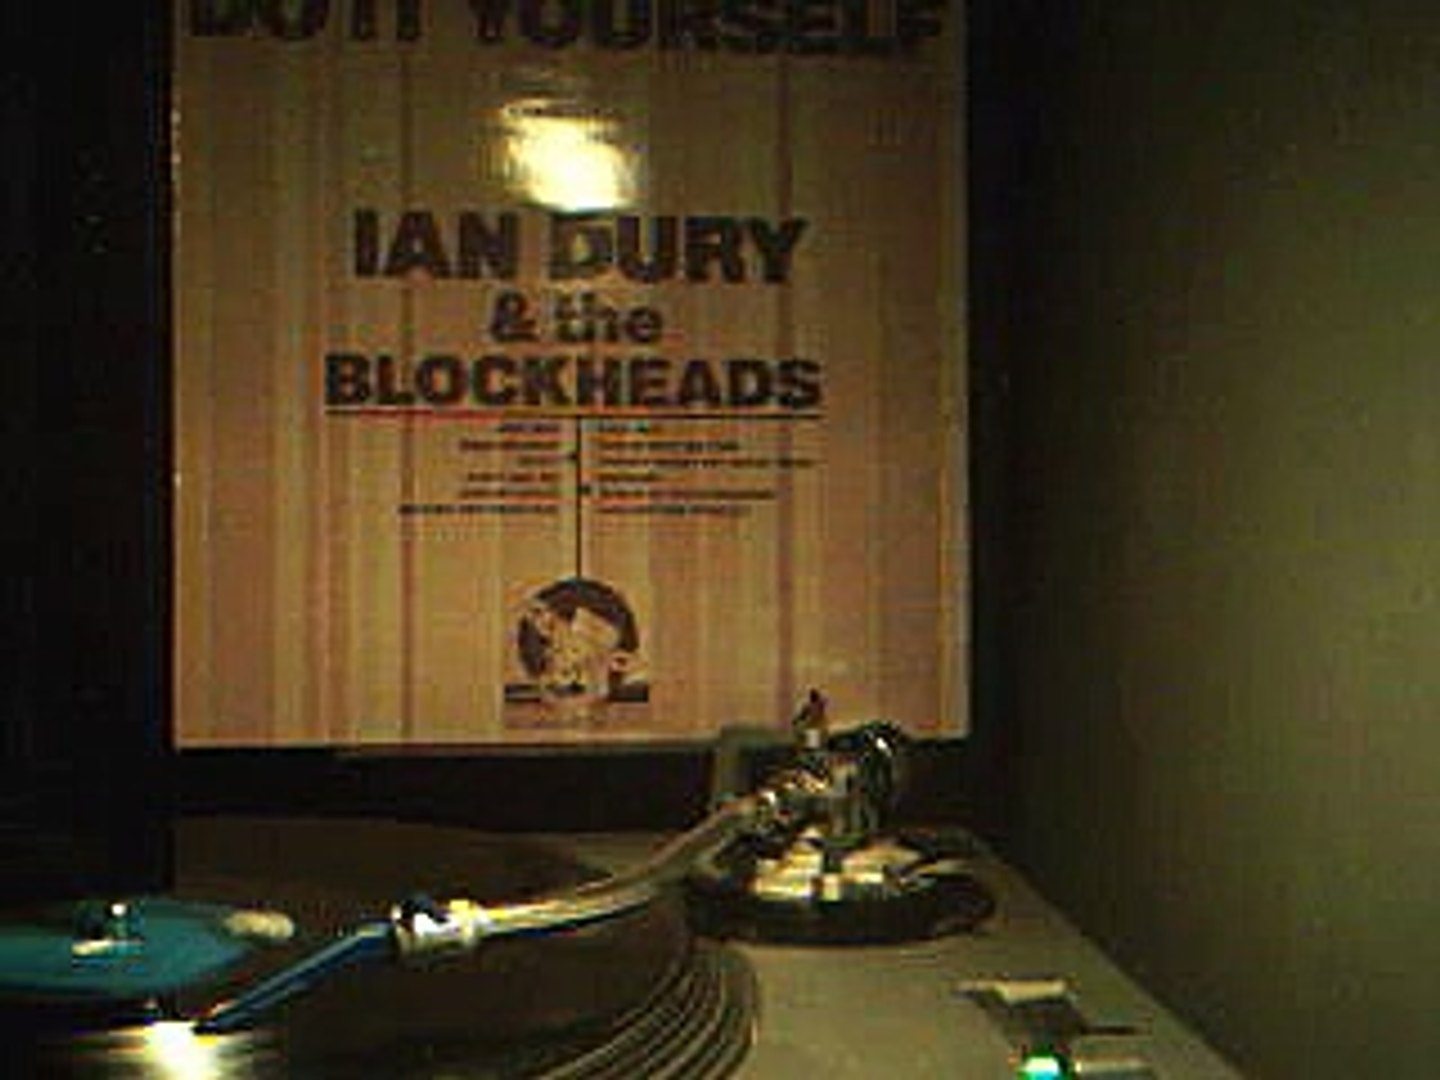 Ian Dury & the Blockheads - Waiting for Your Taxi